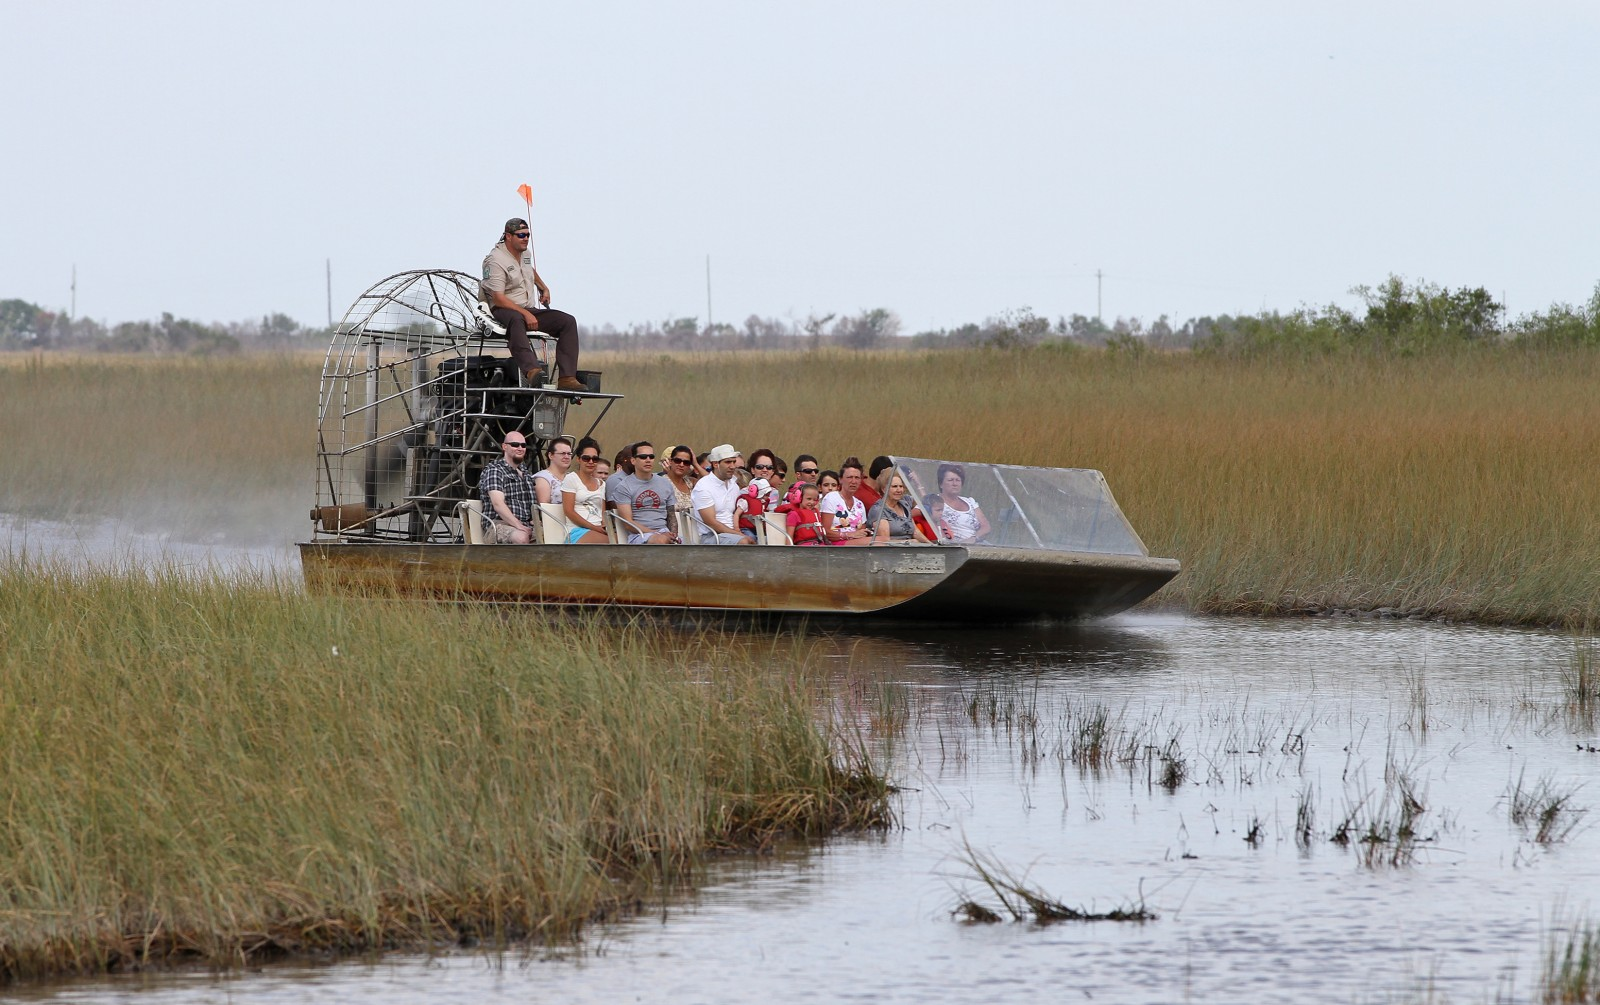 Vincent Price To Be Released Into Florida Everglades